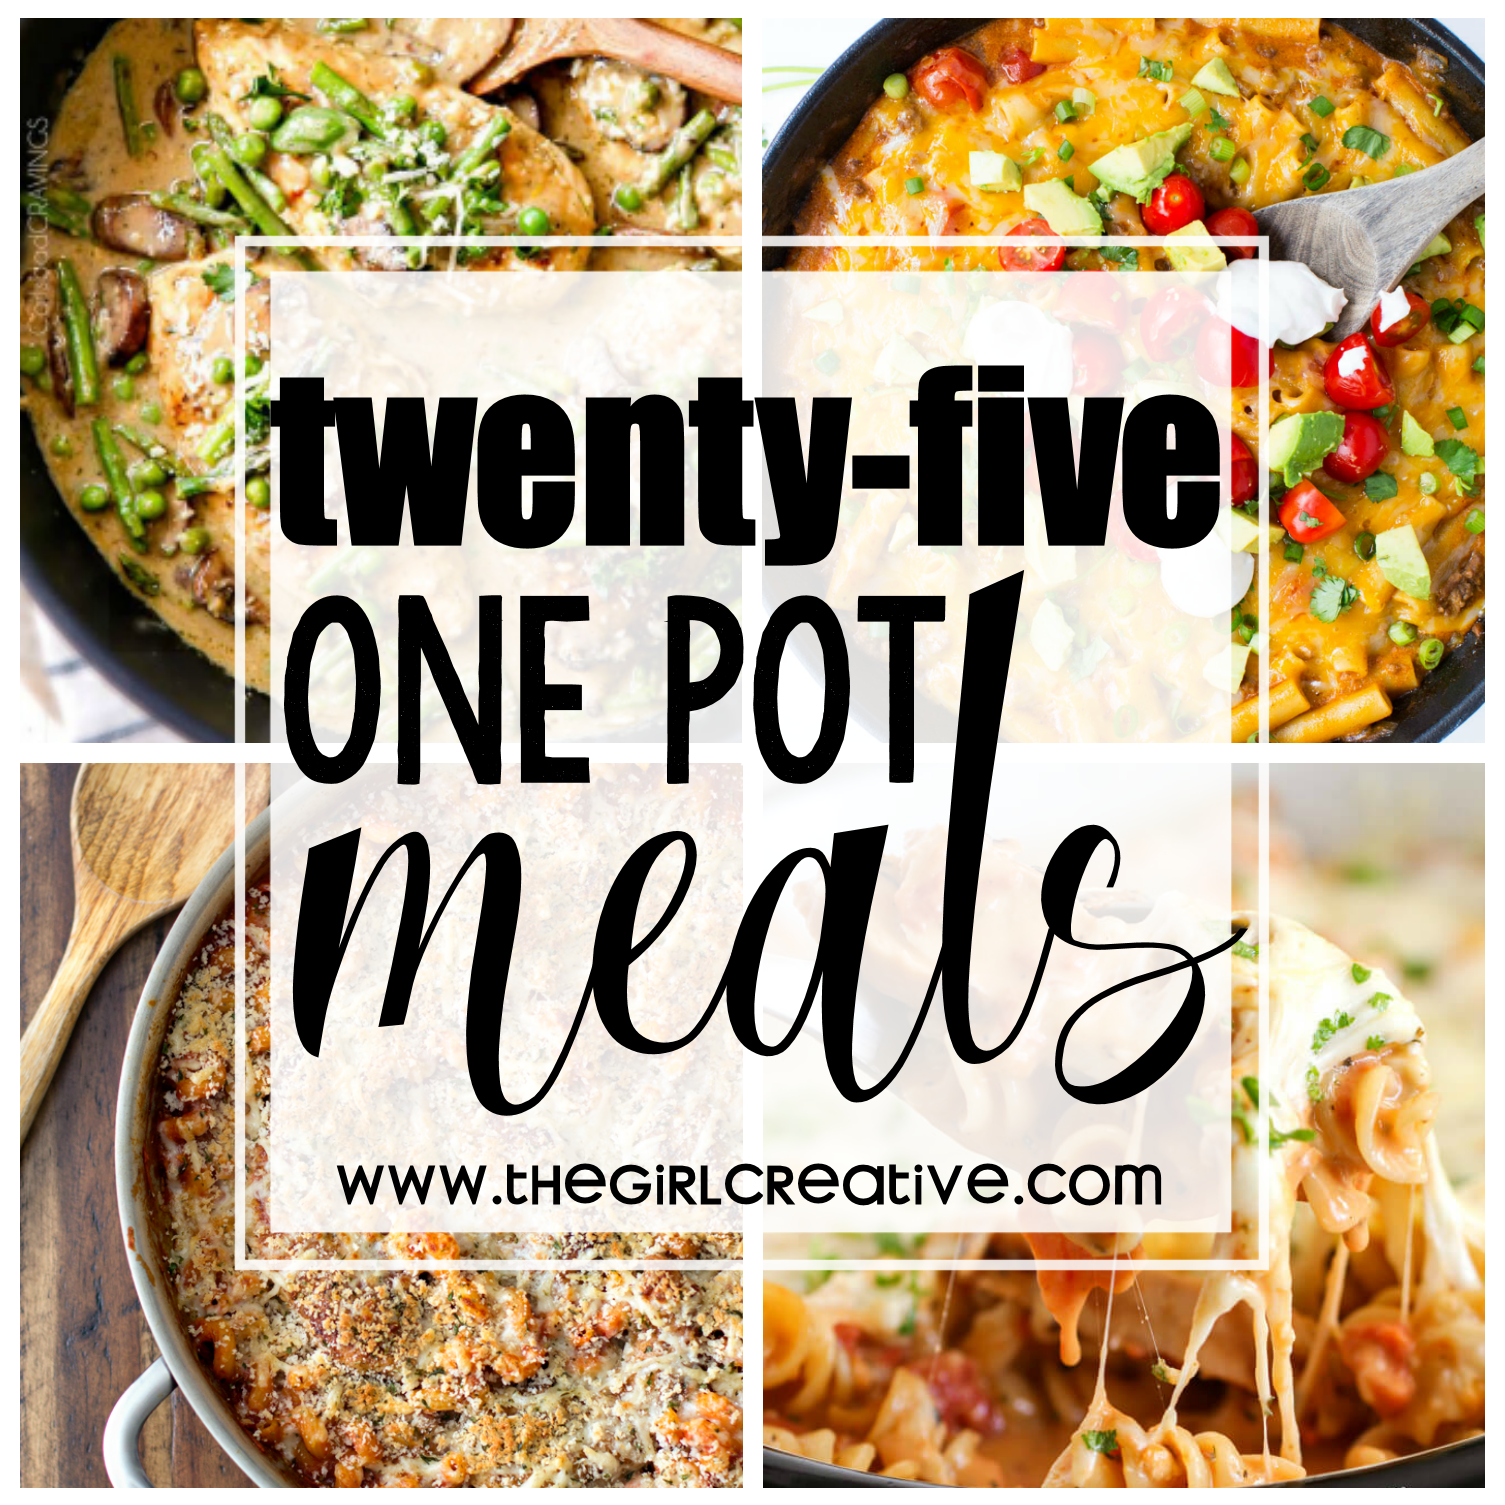 25 One Pot Meals - The Girl Creative